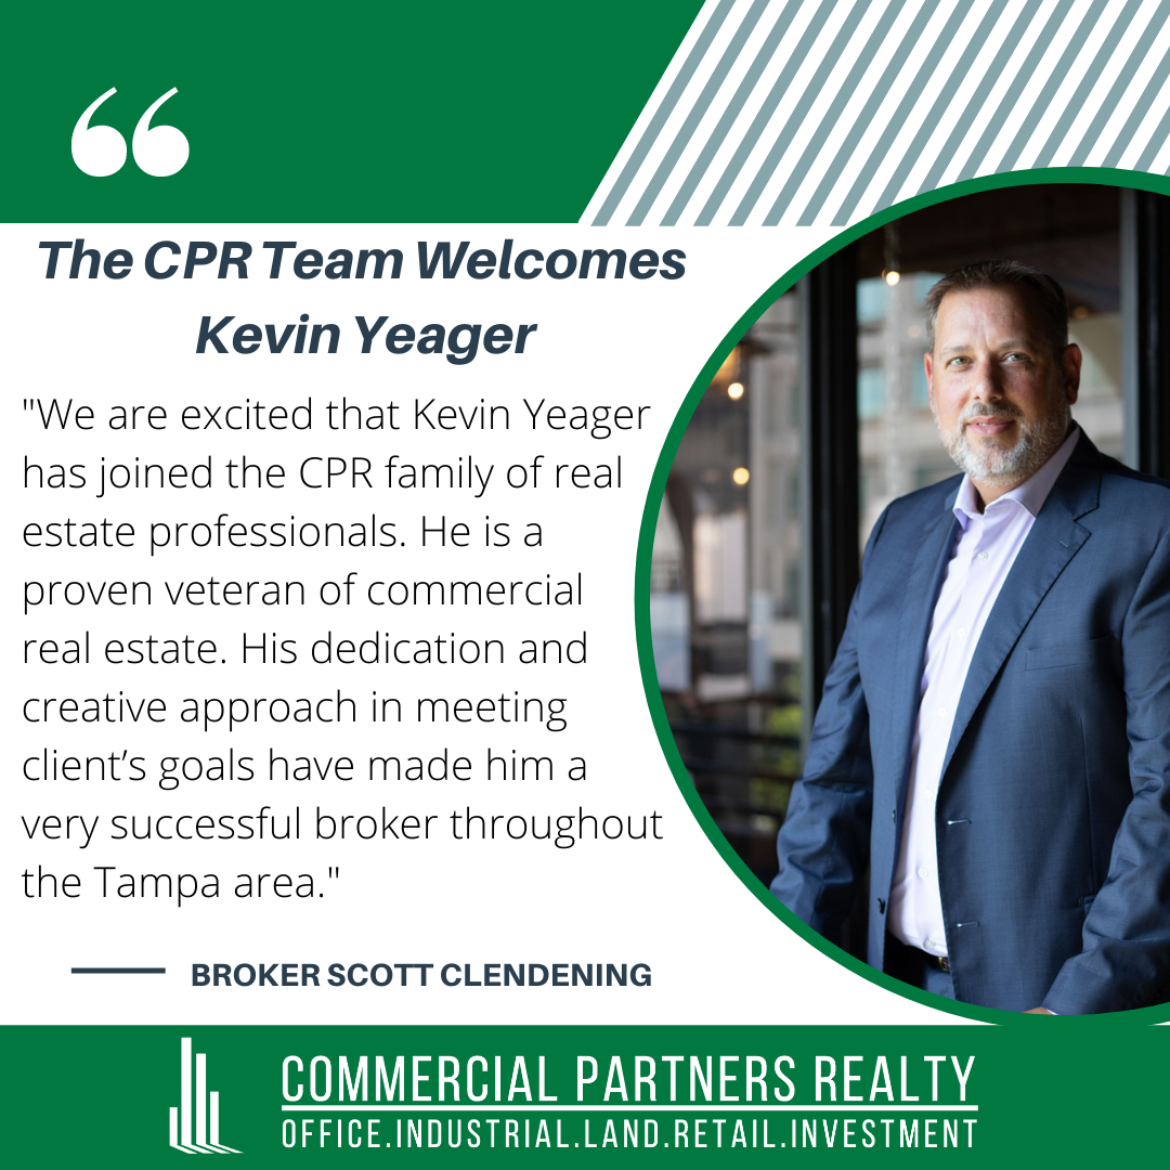 Kevin Yeager Welcome